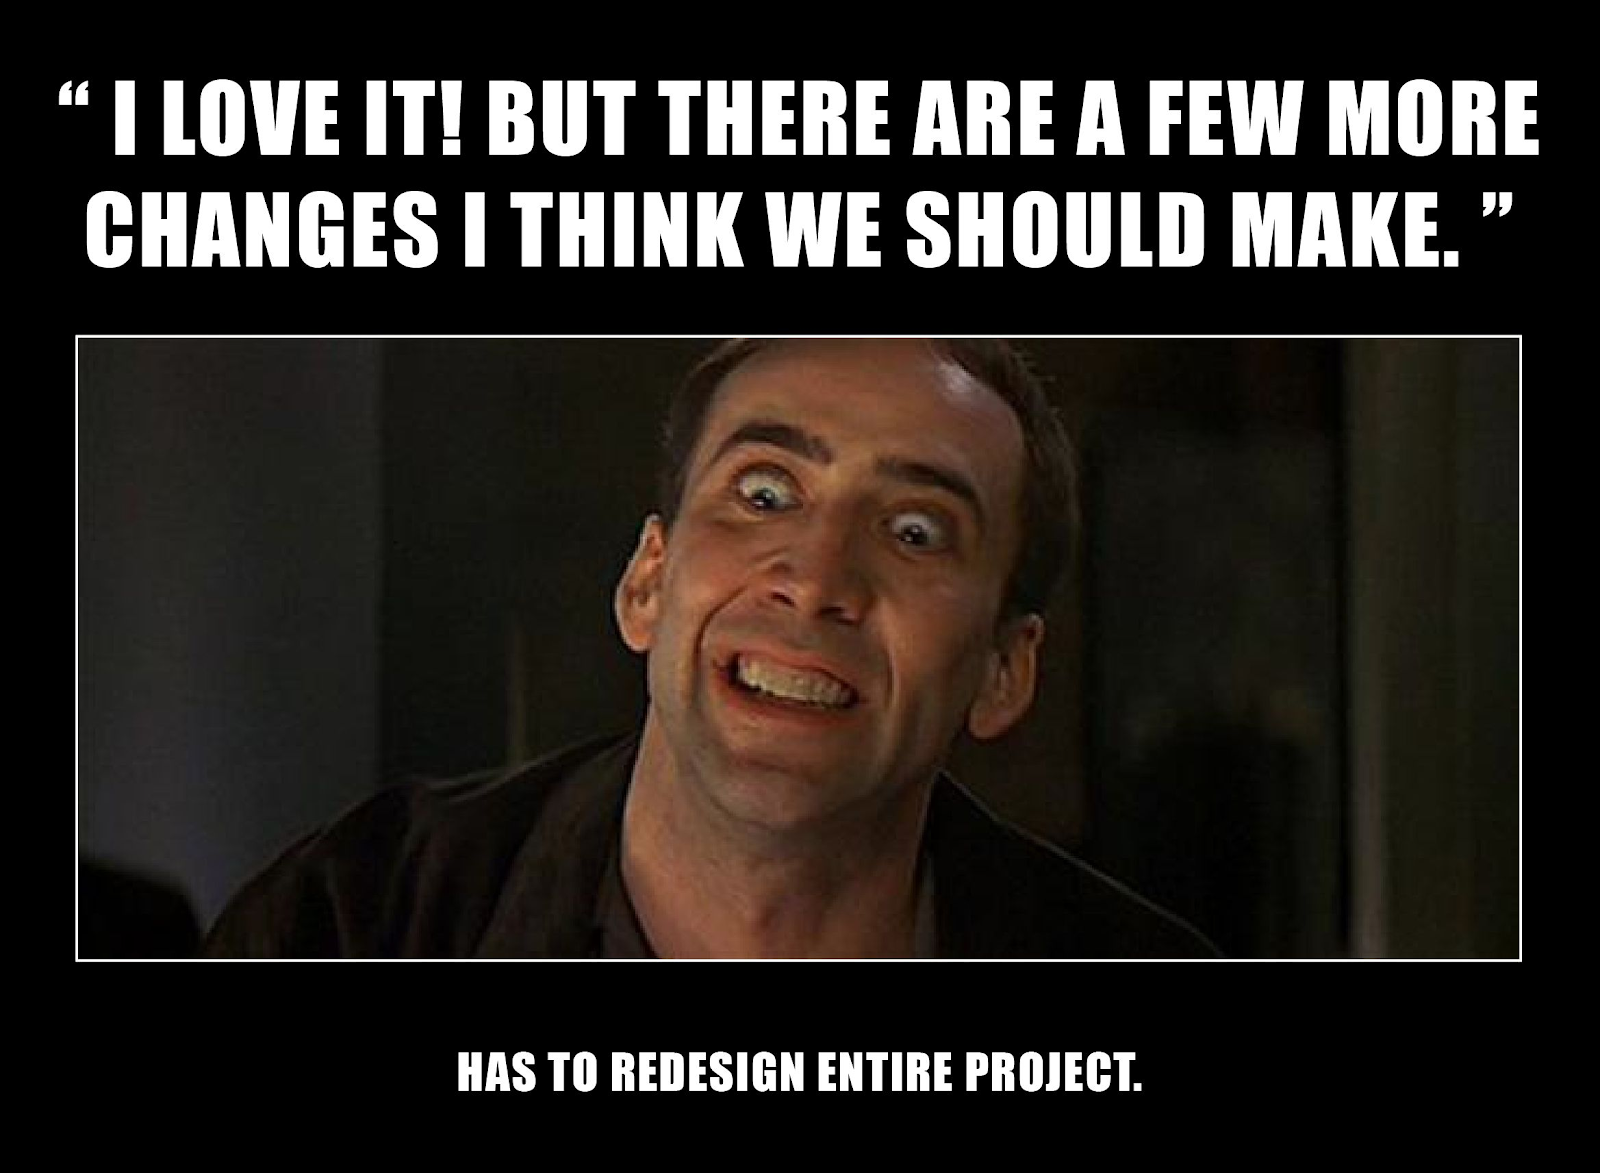 Nicholas Cage rolling his eyes because his client asked him to redesign the entire project once again.